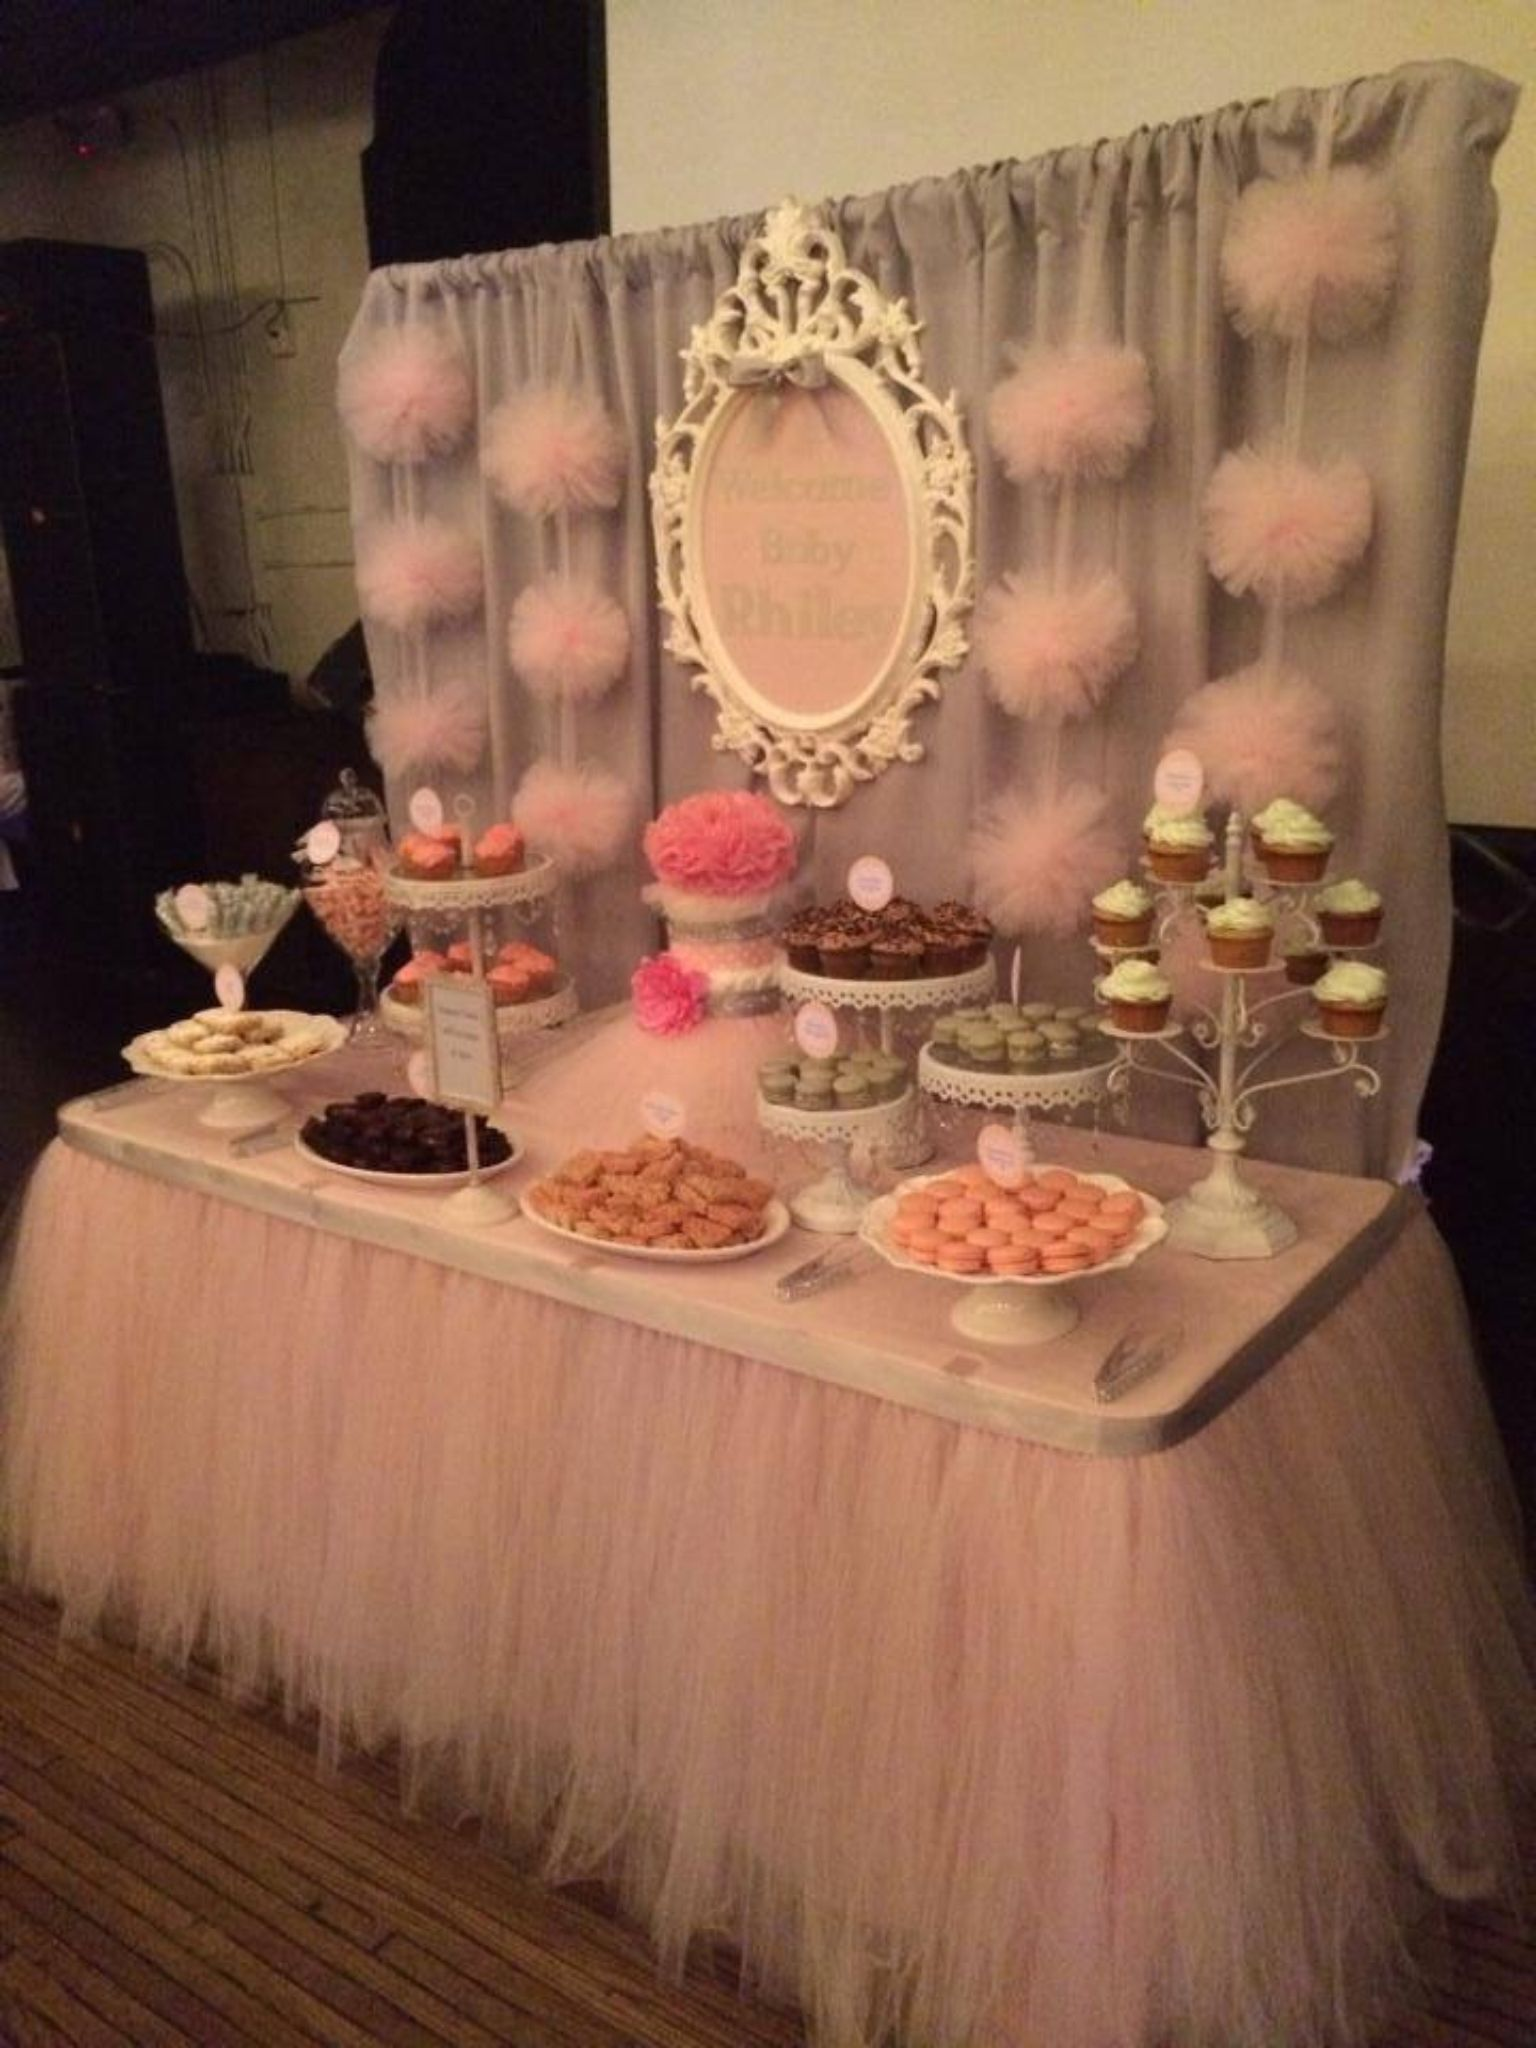 Buffet table skirting - Pretty In Pink Birthday Setup Dessert Table Decor And Skirting Done By Isabellasdesigns